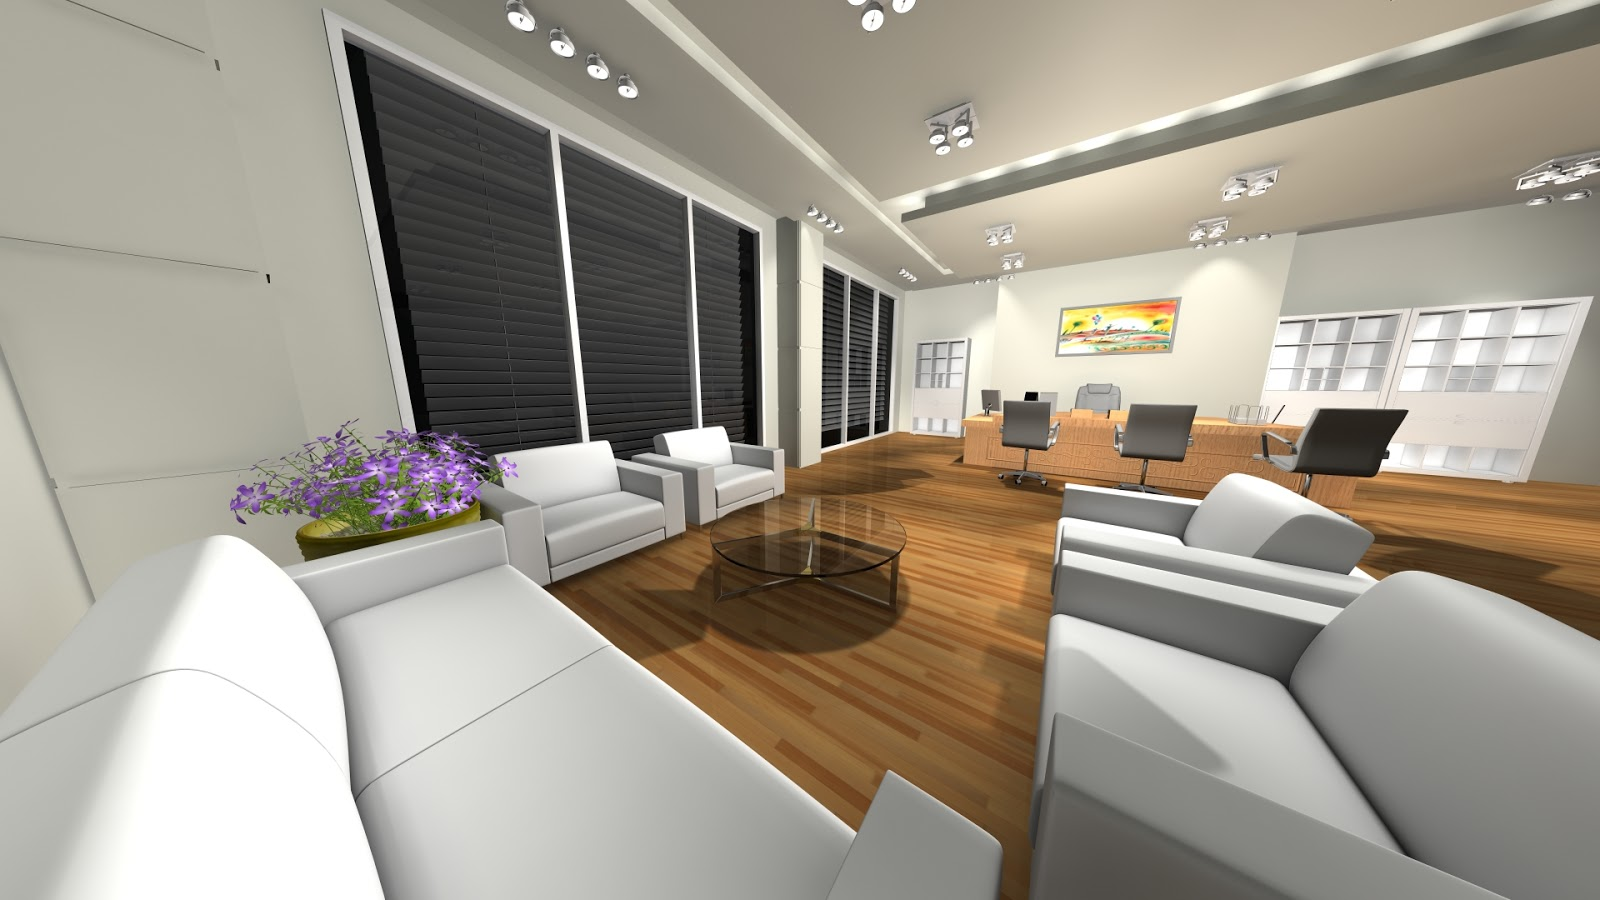 Sajid designer office room 3d interior design 3ds max for 3d interior